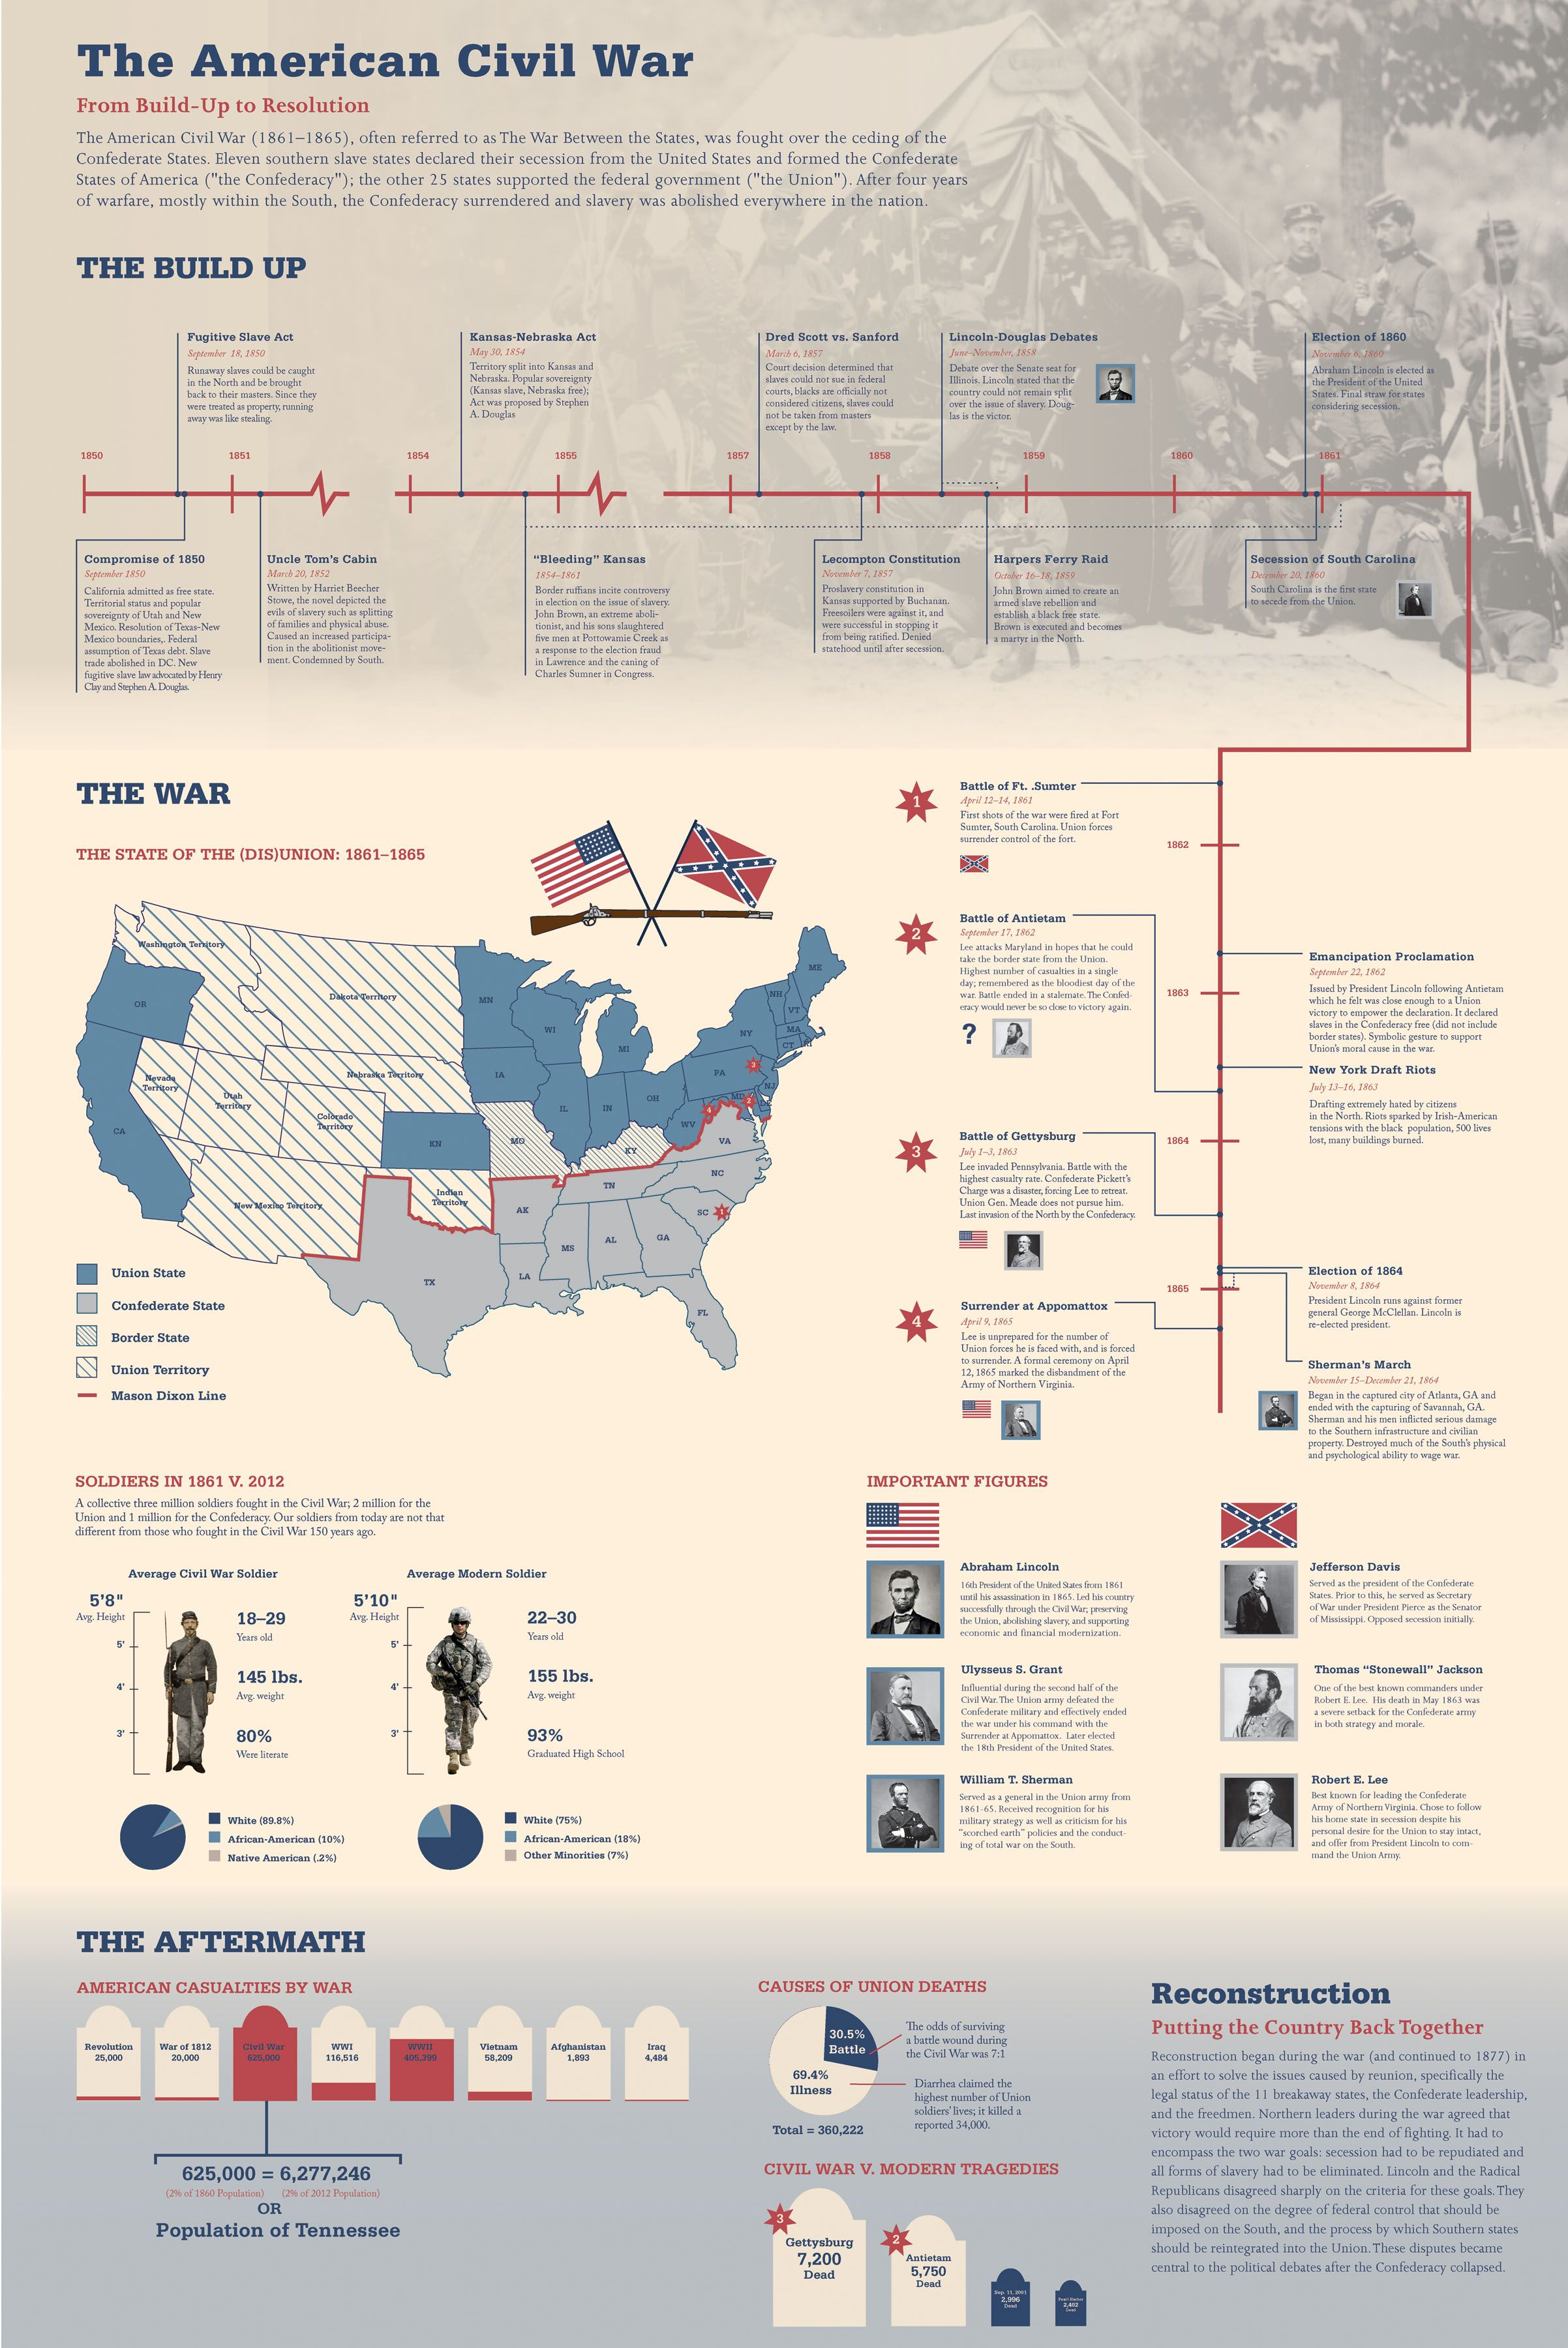 The Best Sites For Learning About The American Civil War